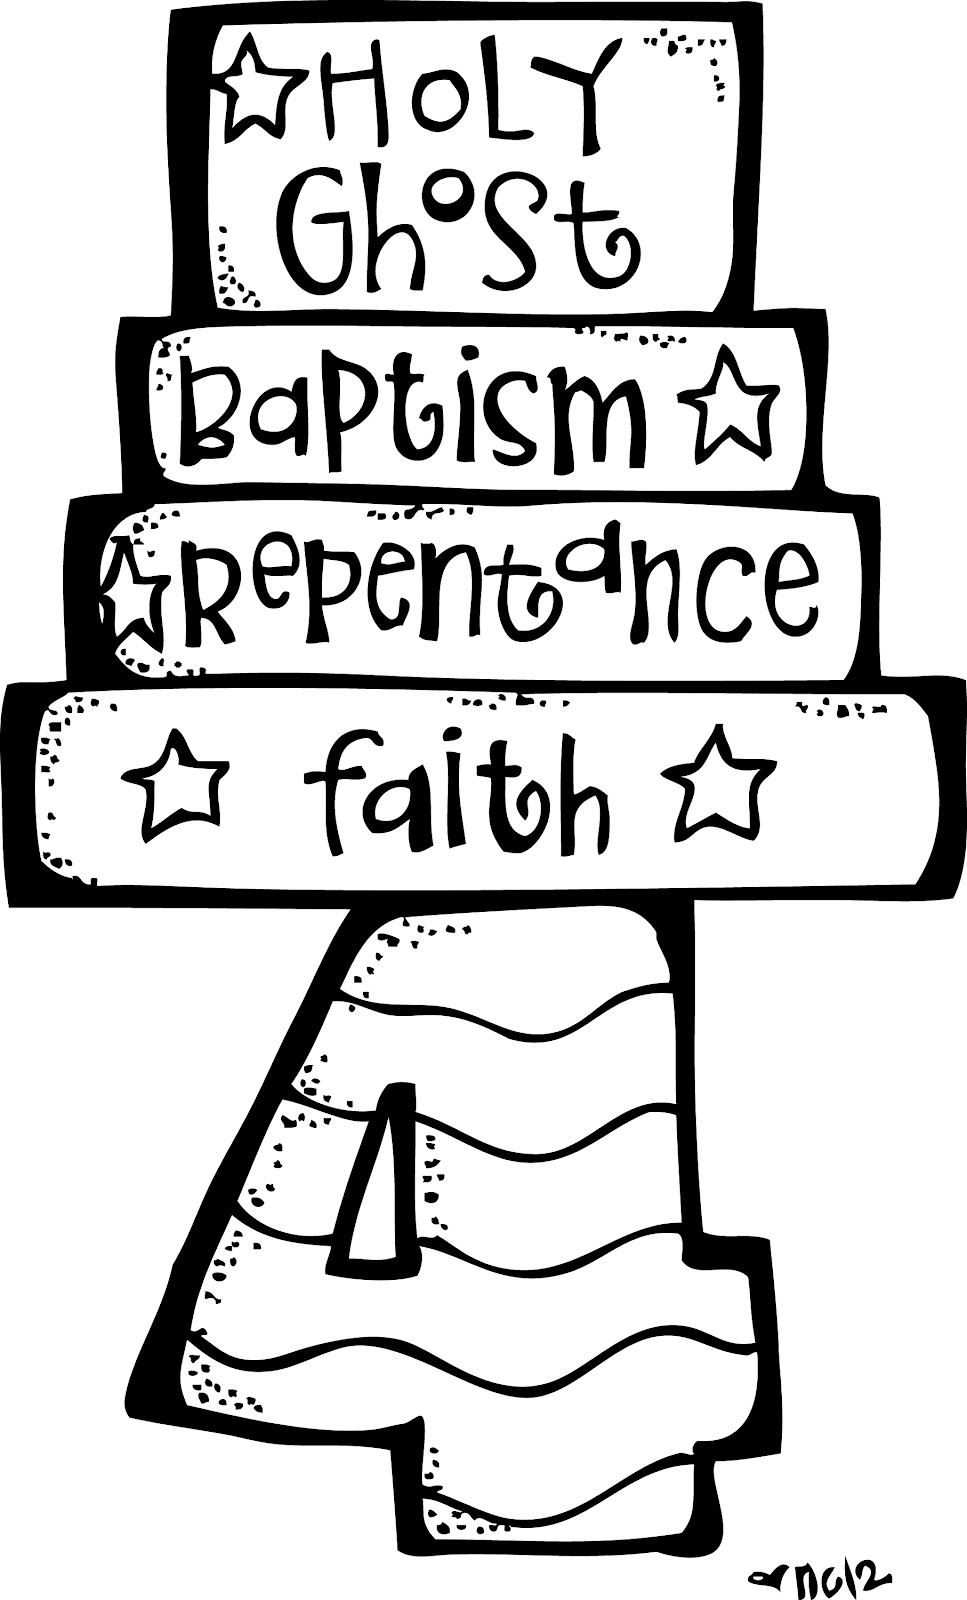 Article of faith clipart.